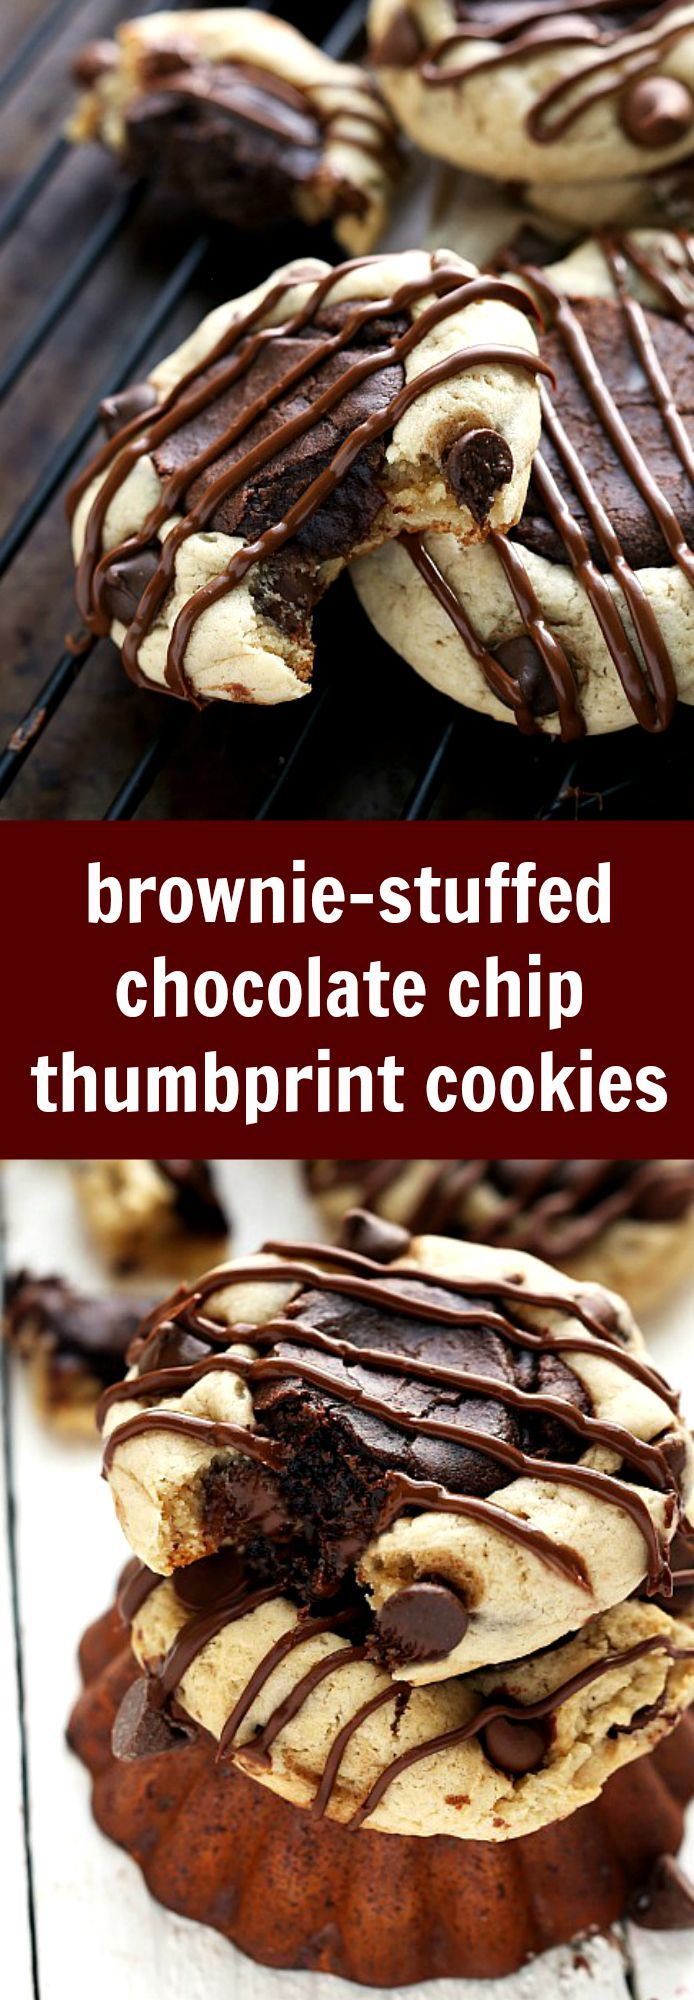 brownie center stuffed inside chocolate-chip cookies. Easy, creative, delicious!